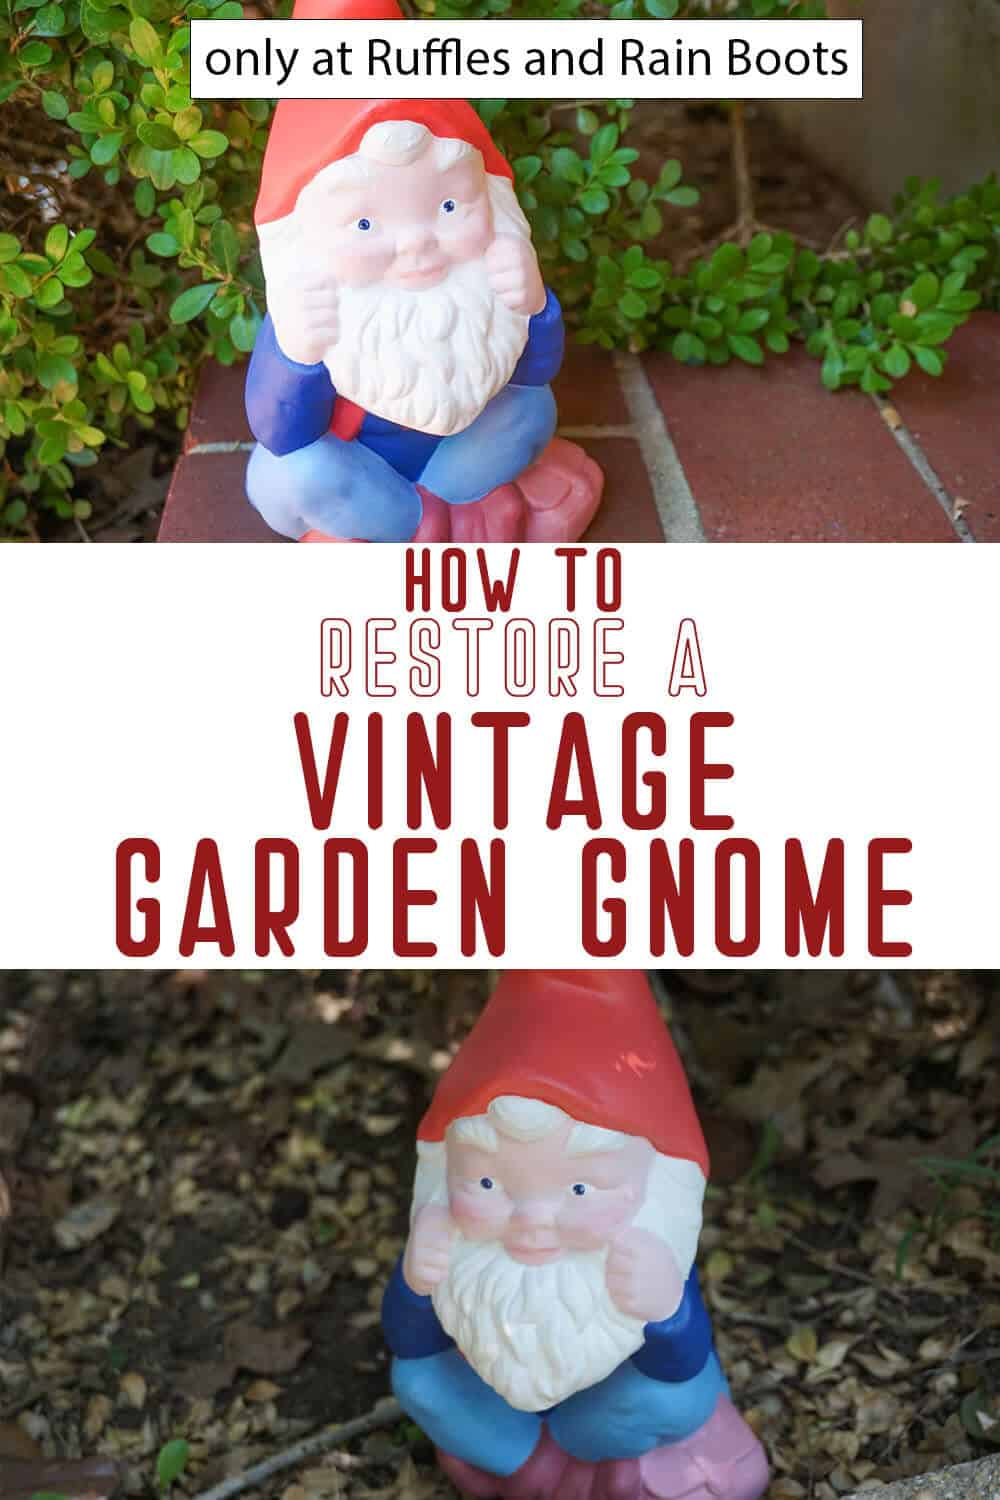 photo collage of repaint a garden gnome with text which reads how to restore a vintage garden gnome